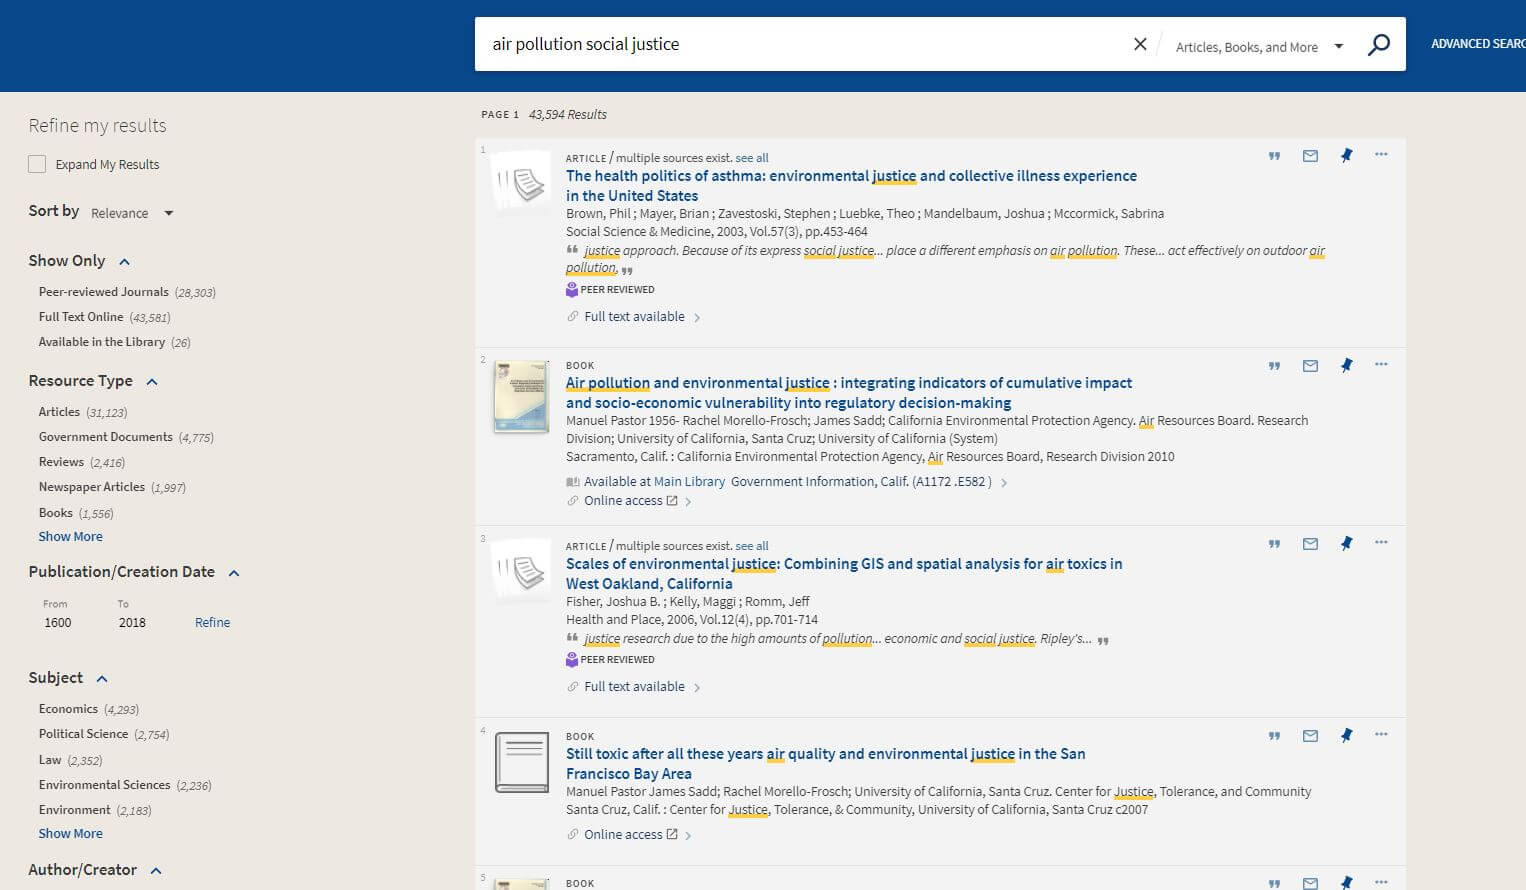 UCSB search results screenshot cropped w/o their branding